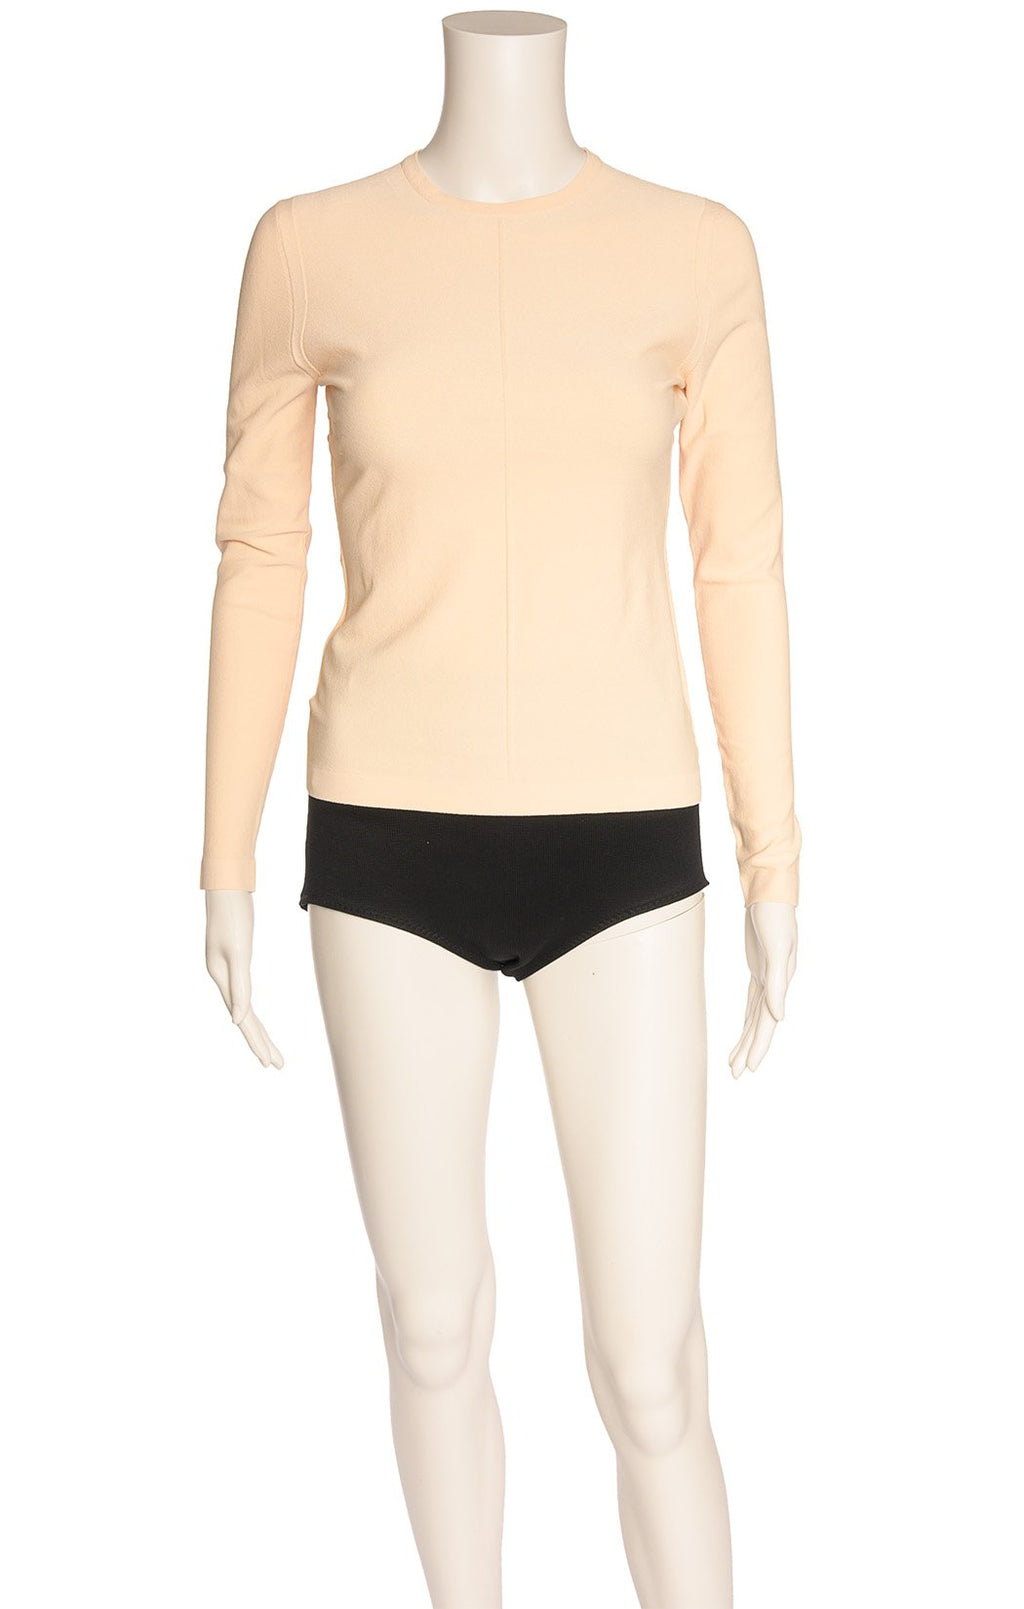 Front view of NARCISO RODRIGUEZ  Top Size: IT 42 (comparable to US Medium)